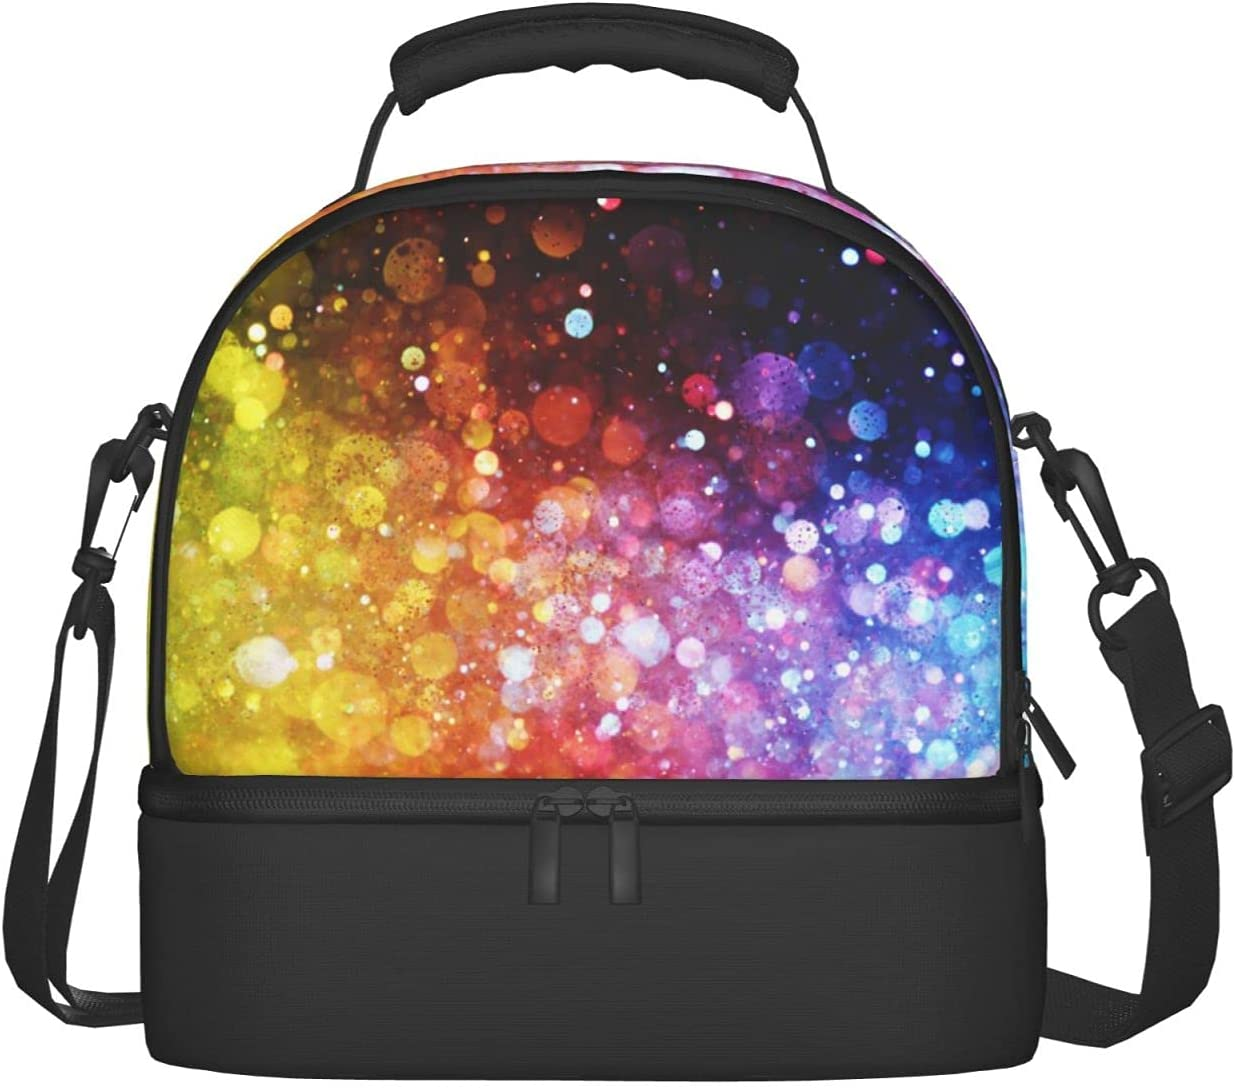 Fantasy Abstract Art Lunch Price reduction Bag Adjustable Shoulder Strap Insulat discount